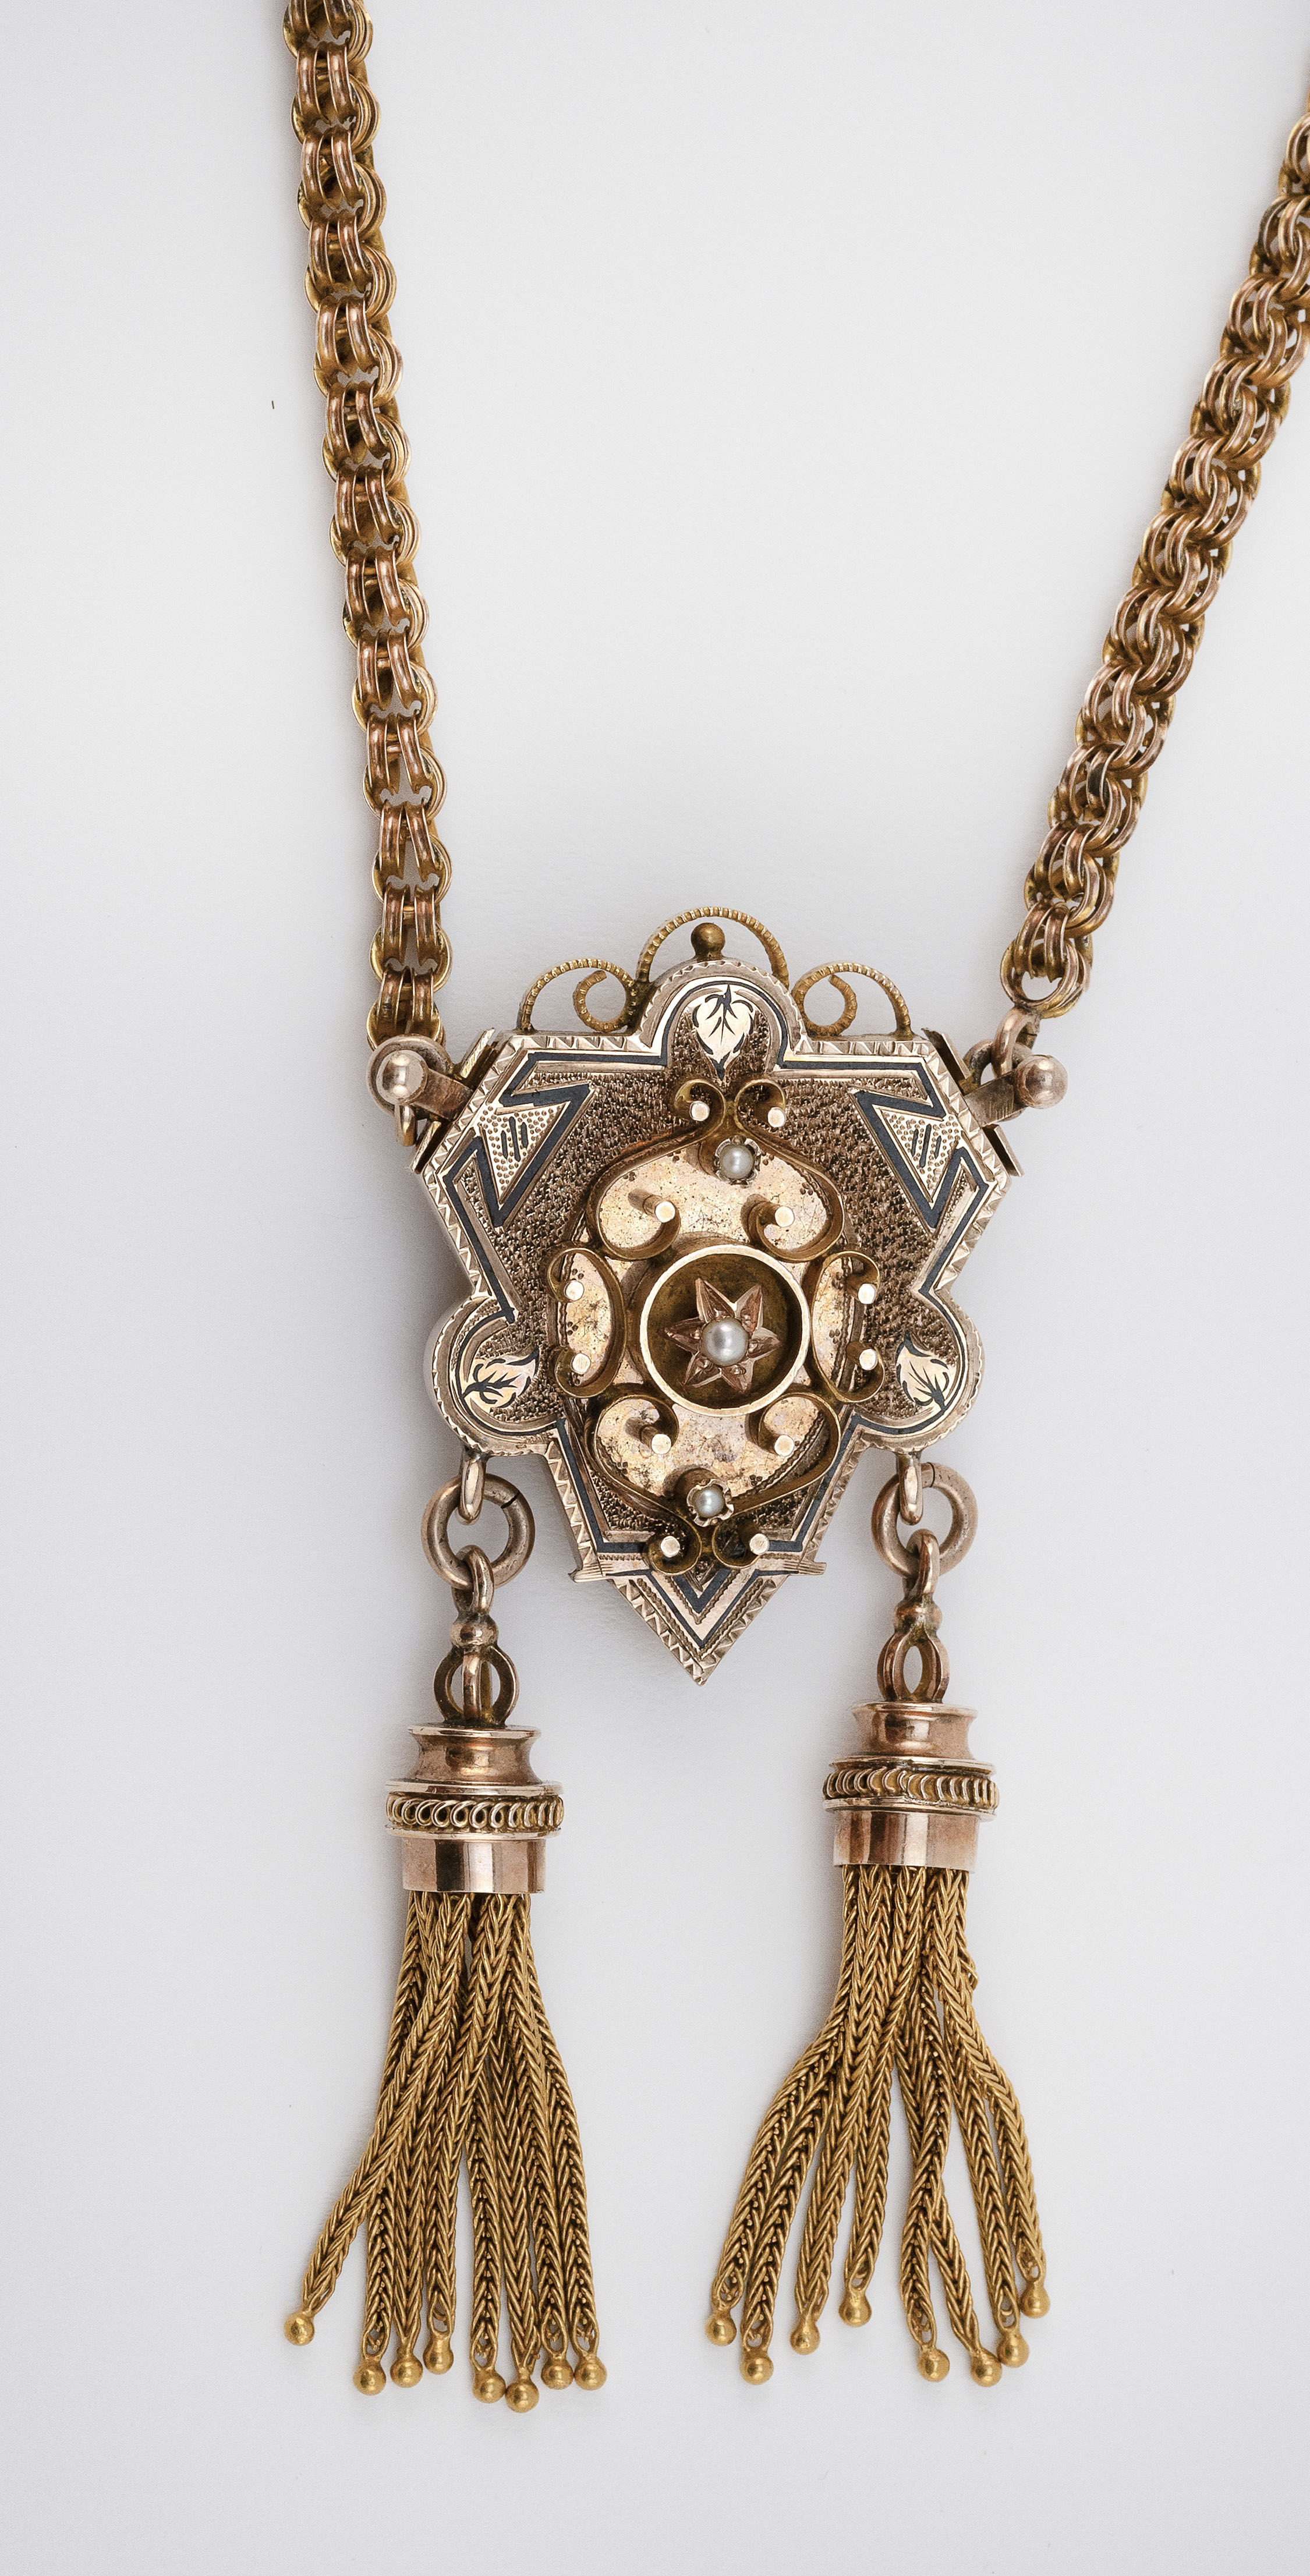 VICTORIAN GOLD, ENAMEL AND SEED PEARL NECKLACE Approx. 23.53 dwt.